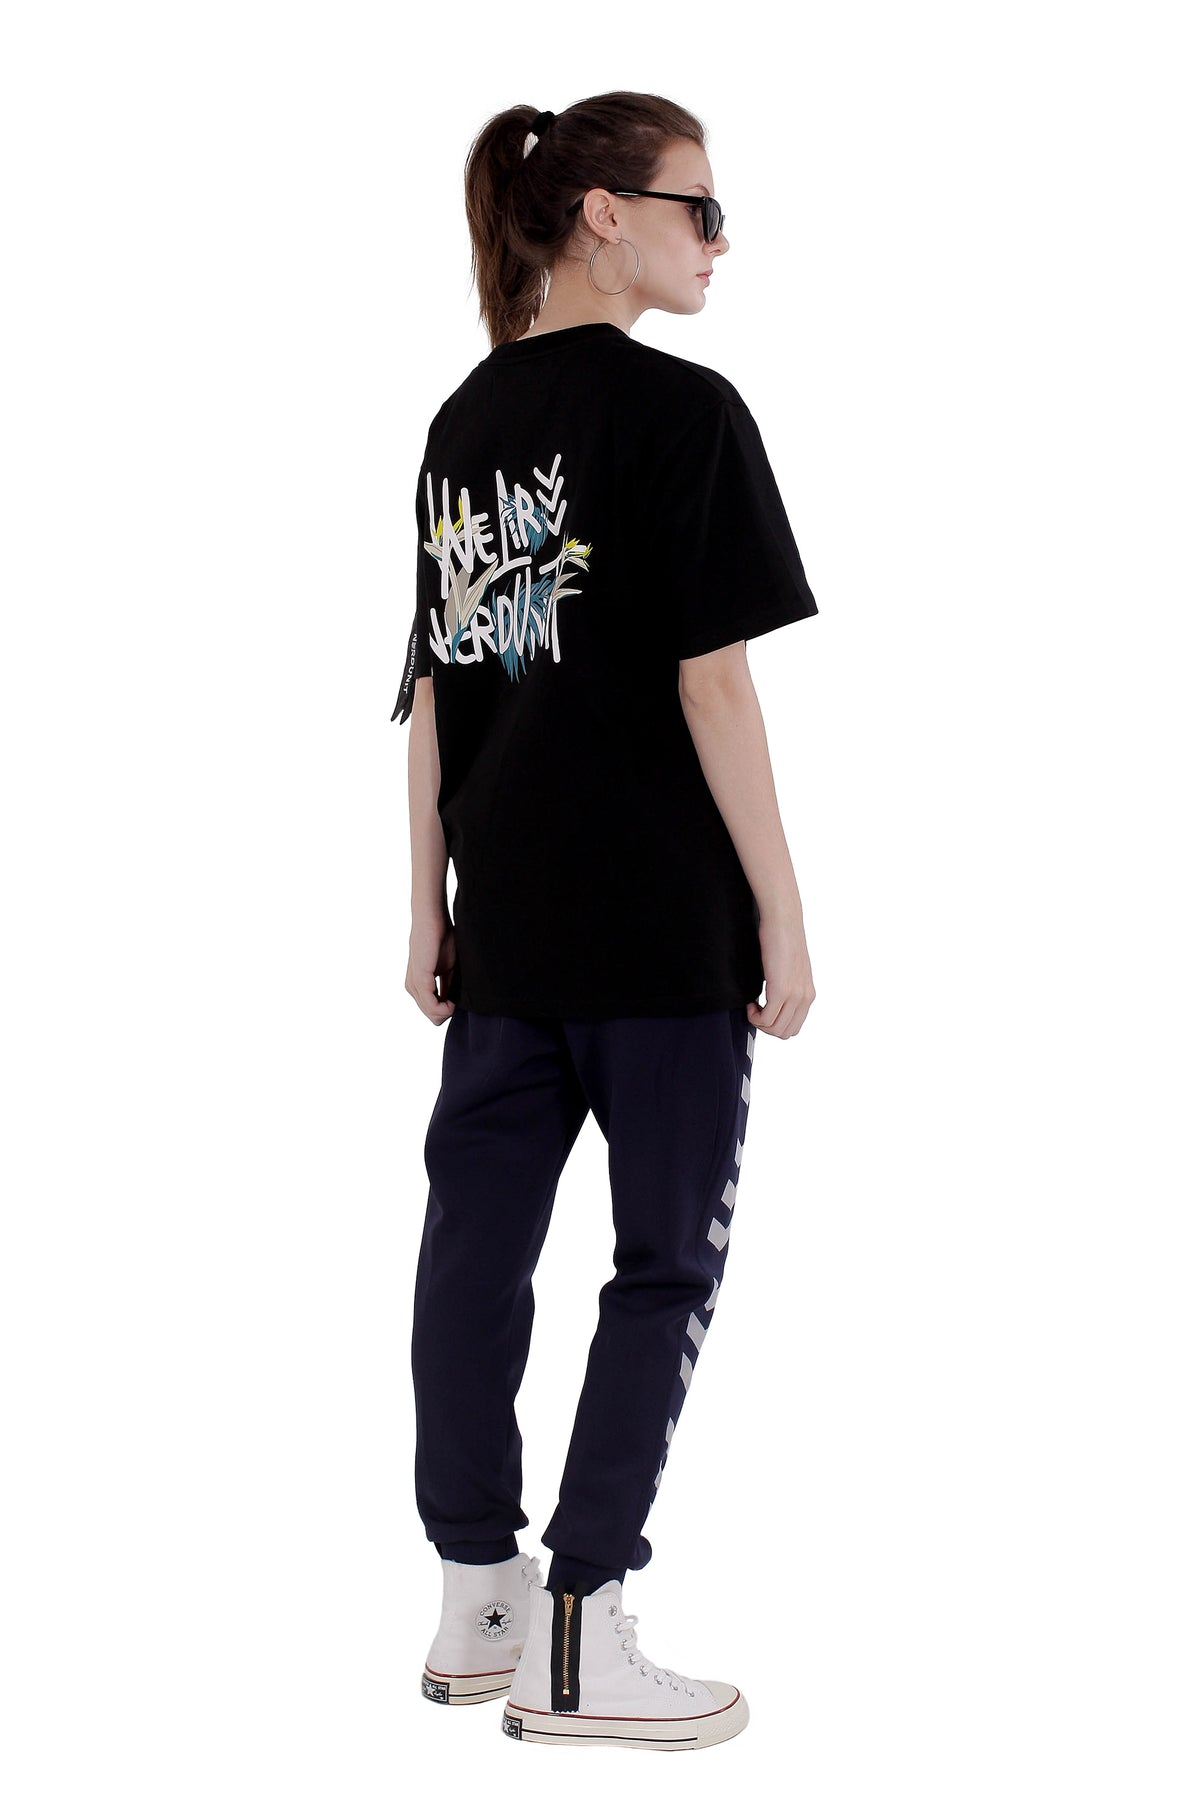 WE ARE NU FLORAL TEE | BLACK ( We Are NU フローラル Tシャツ | ブラック )